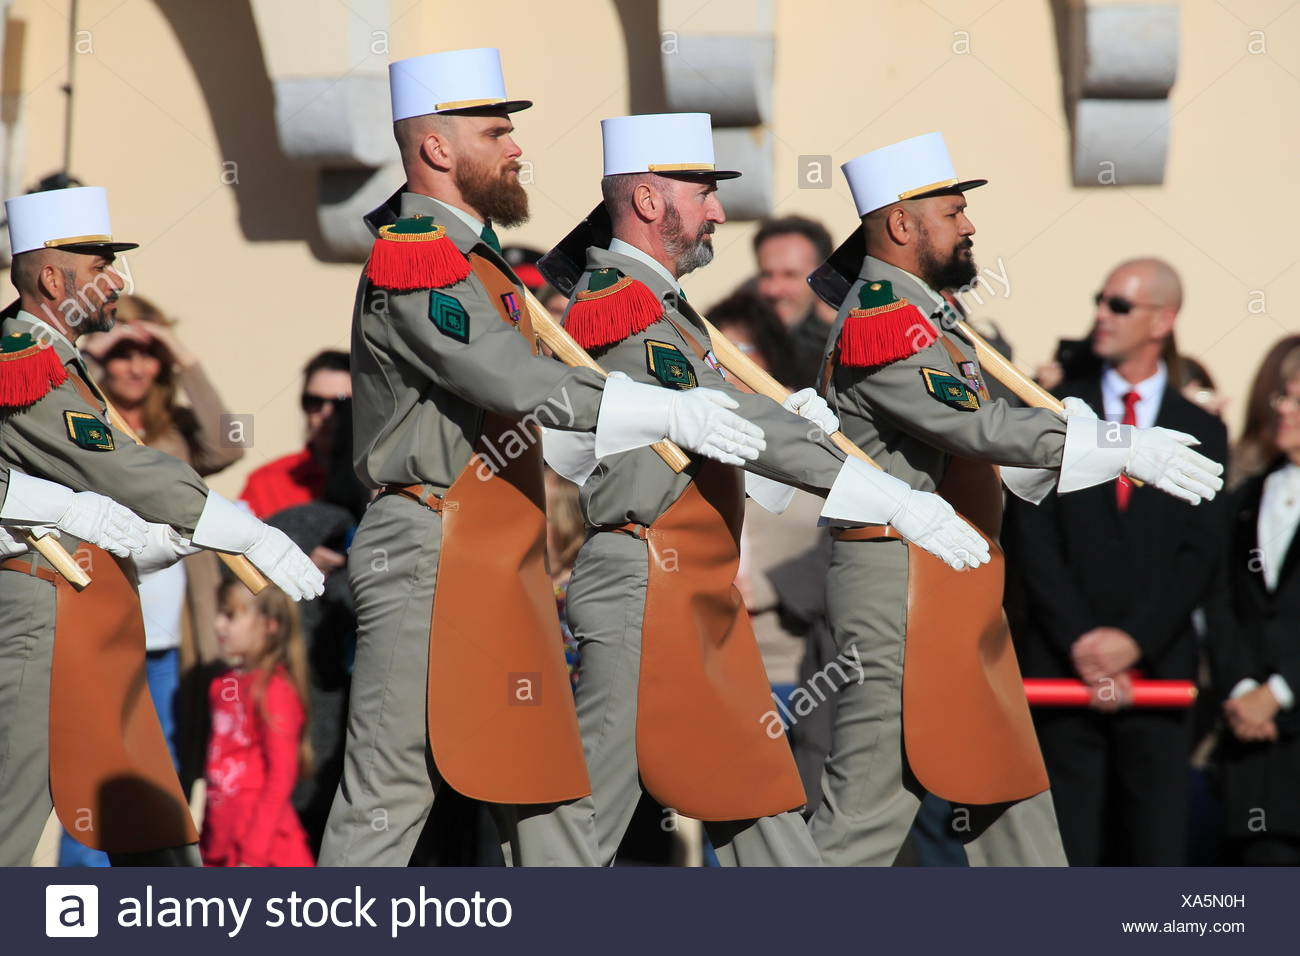 Parade in front of the Prince's Palace, National Fête du Prince, Principality of Monaco - Stock Image